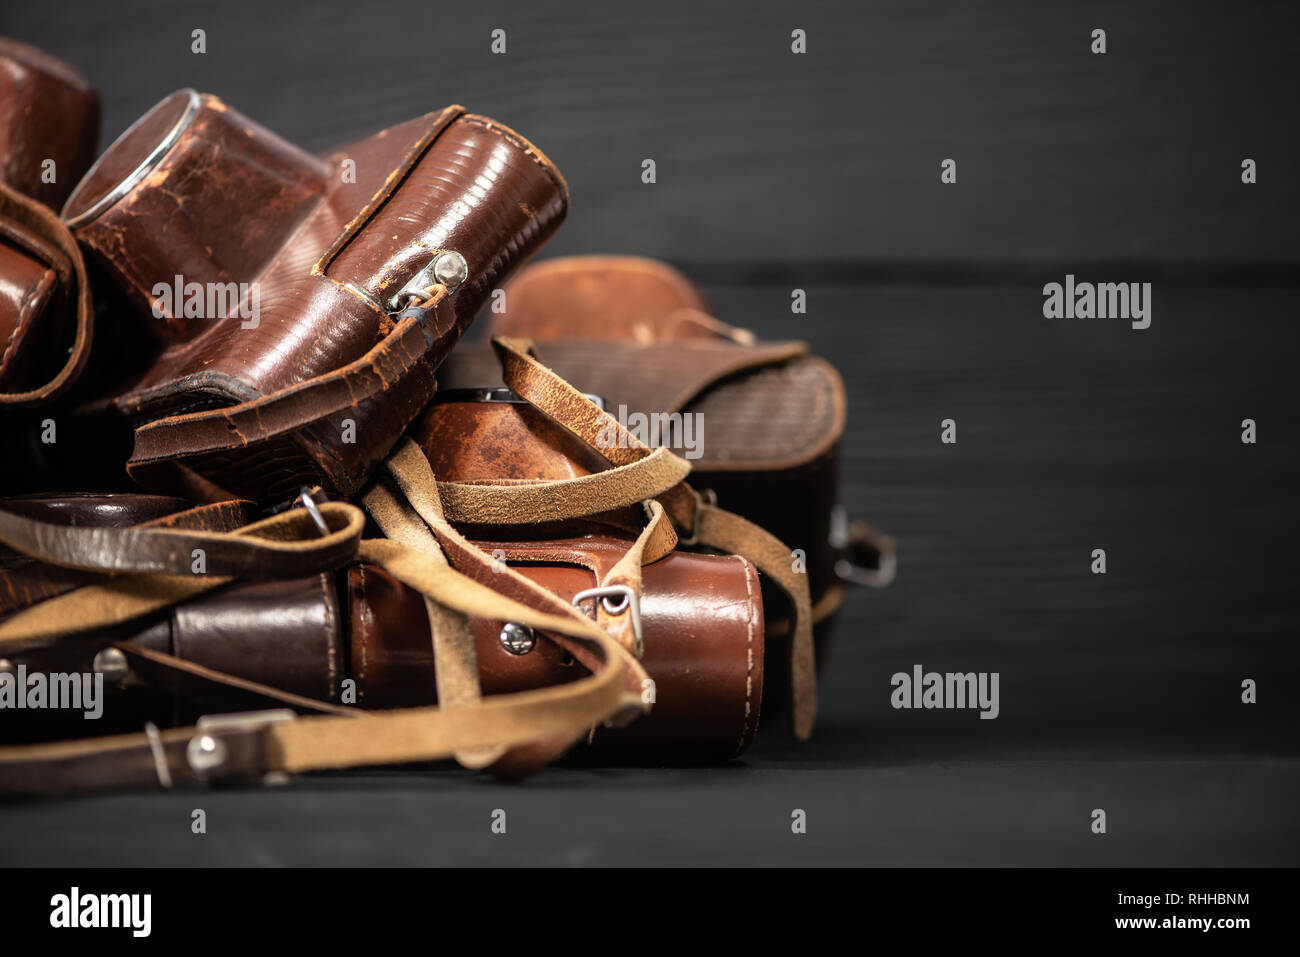 Heap of 35mm analog cameras in leather covers on black background Stock Photo